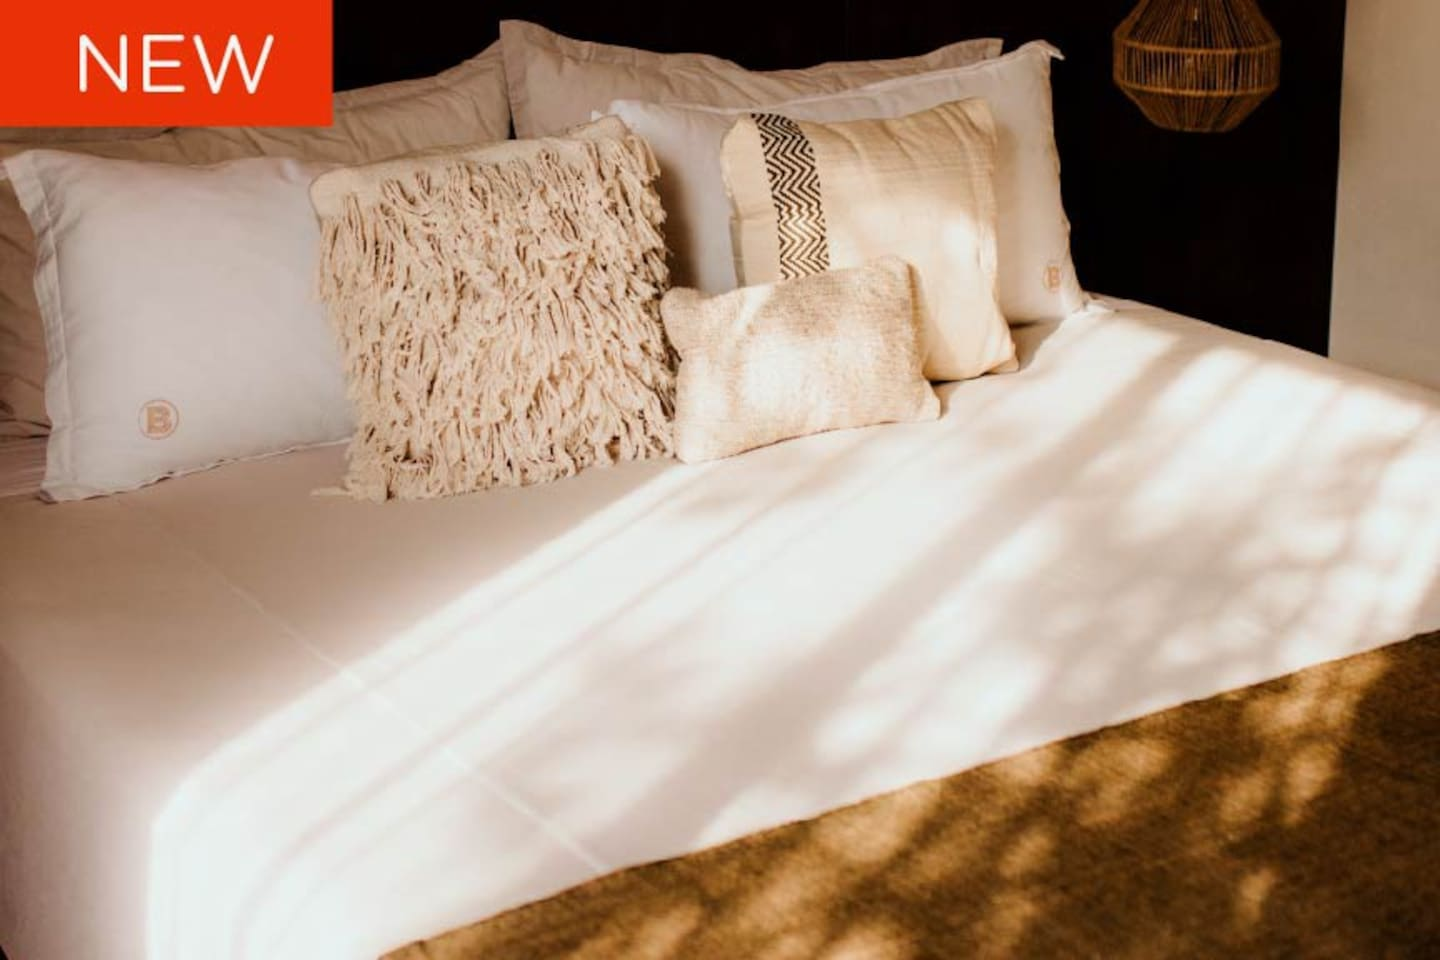 Incredible mattresses, pillows and sheets will make you sleep better than at home. Two king size in two bedrooms, one double bed and service room, in this amazing apartment.